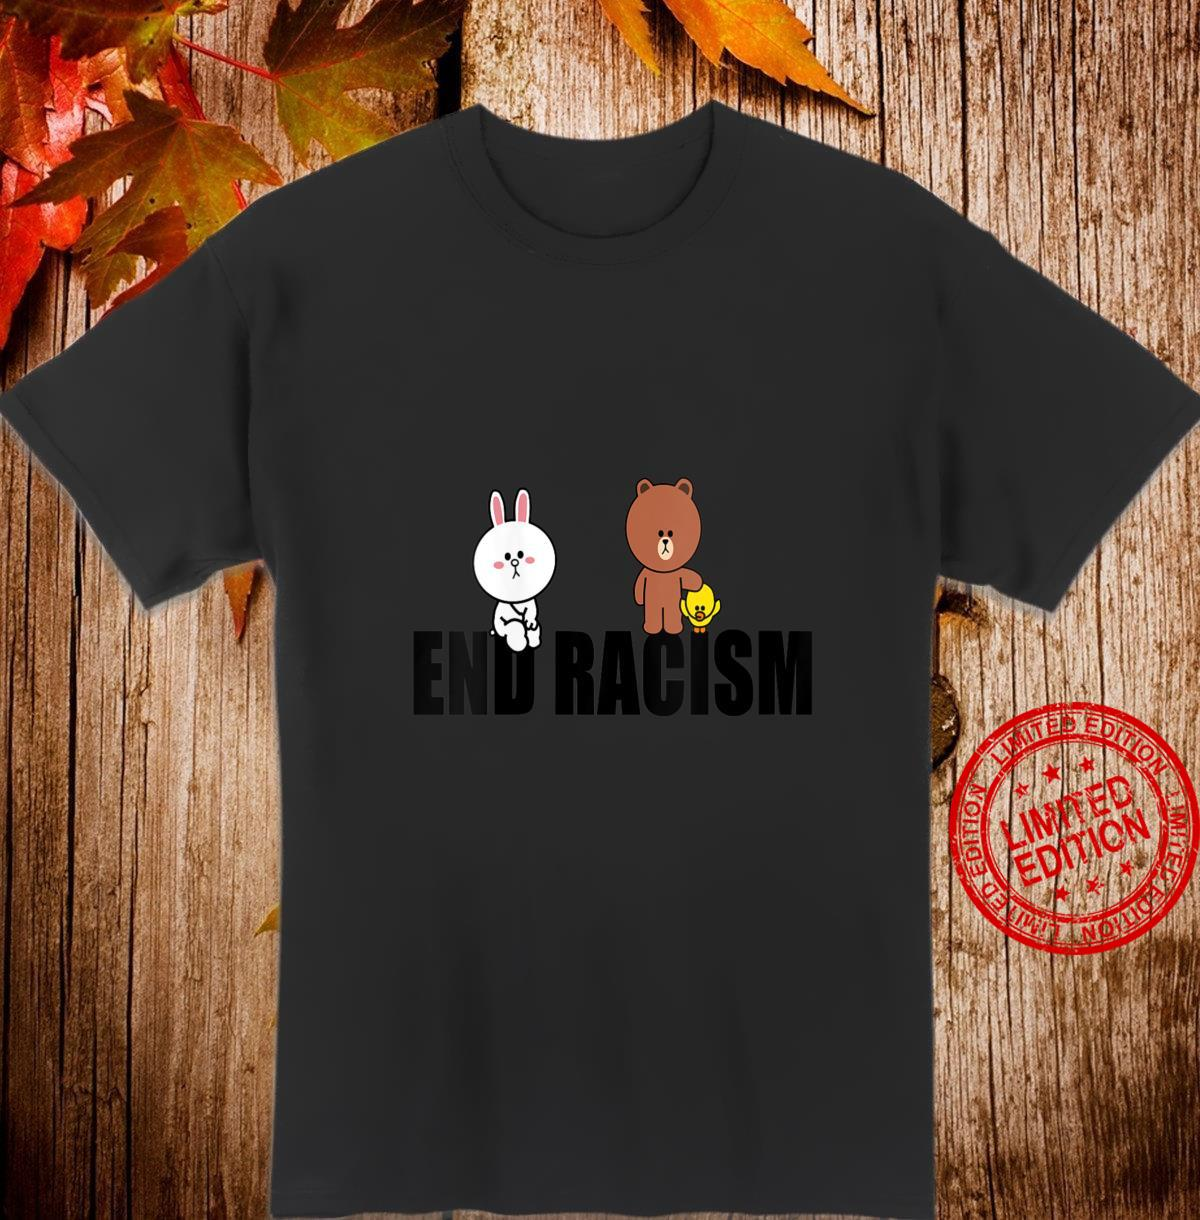 Womens Brown Bear Cony Bunny Rabbit Duck End Racism Love Each Other Shirt